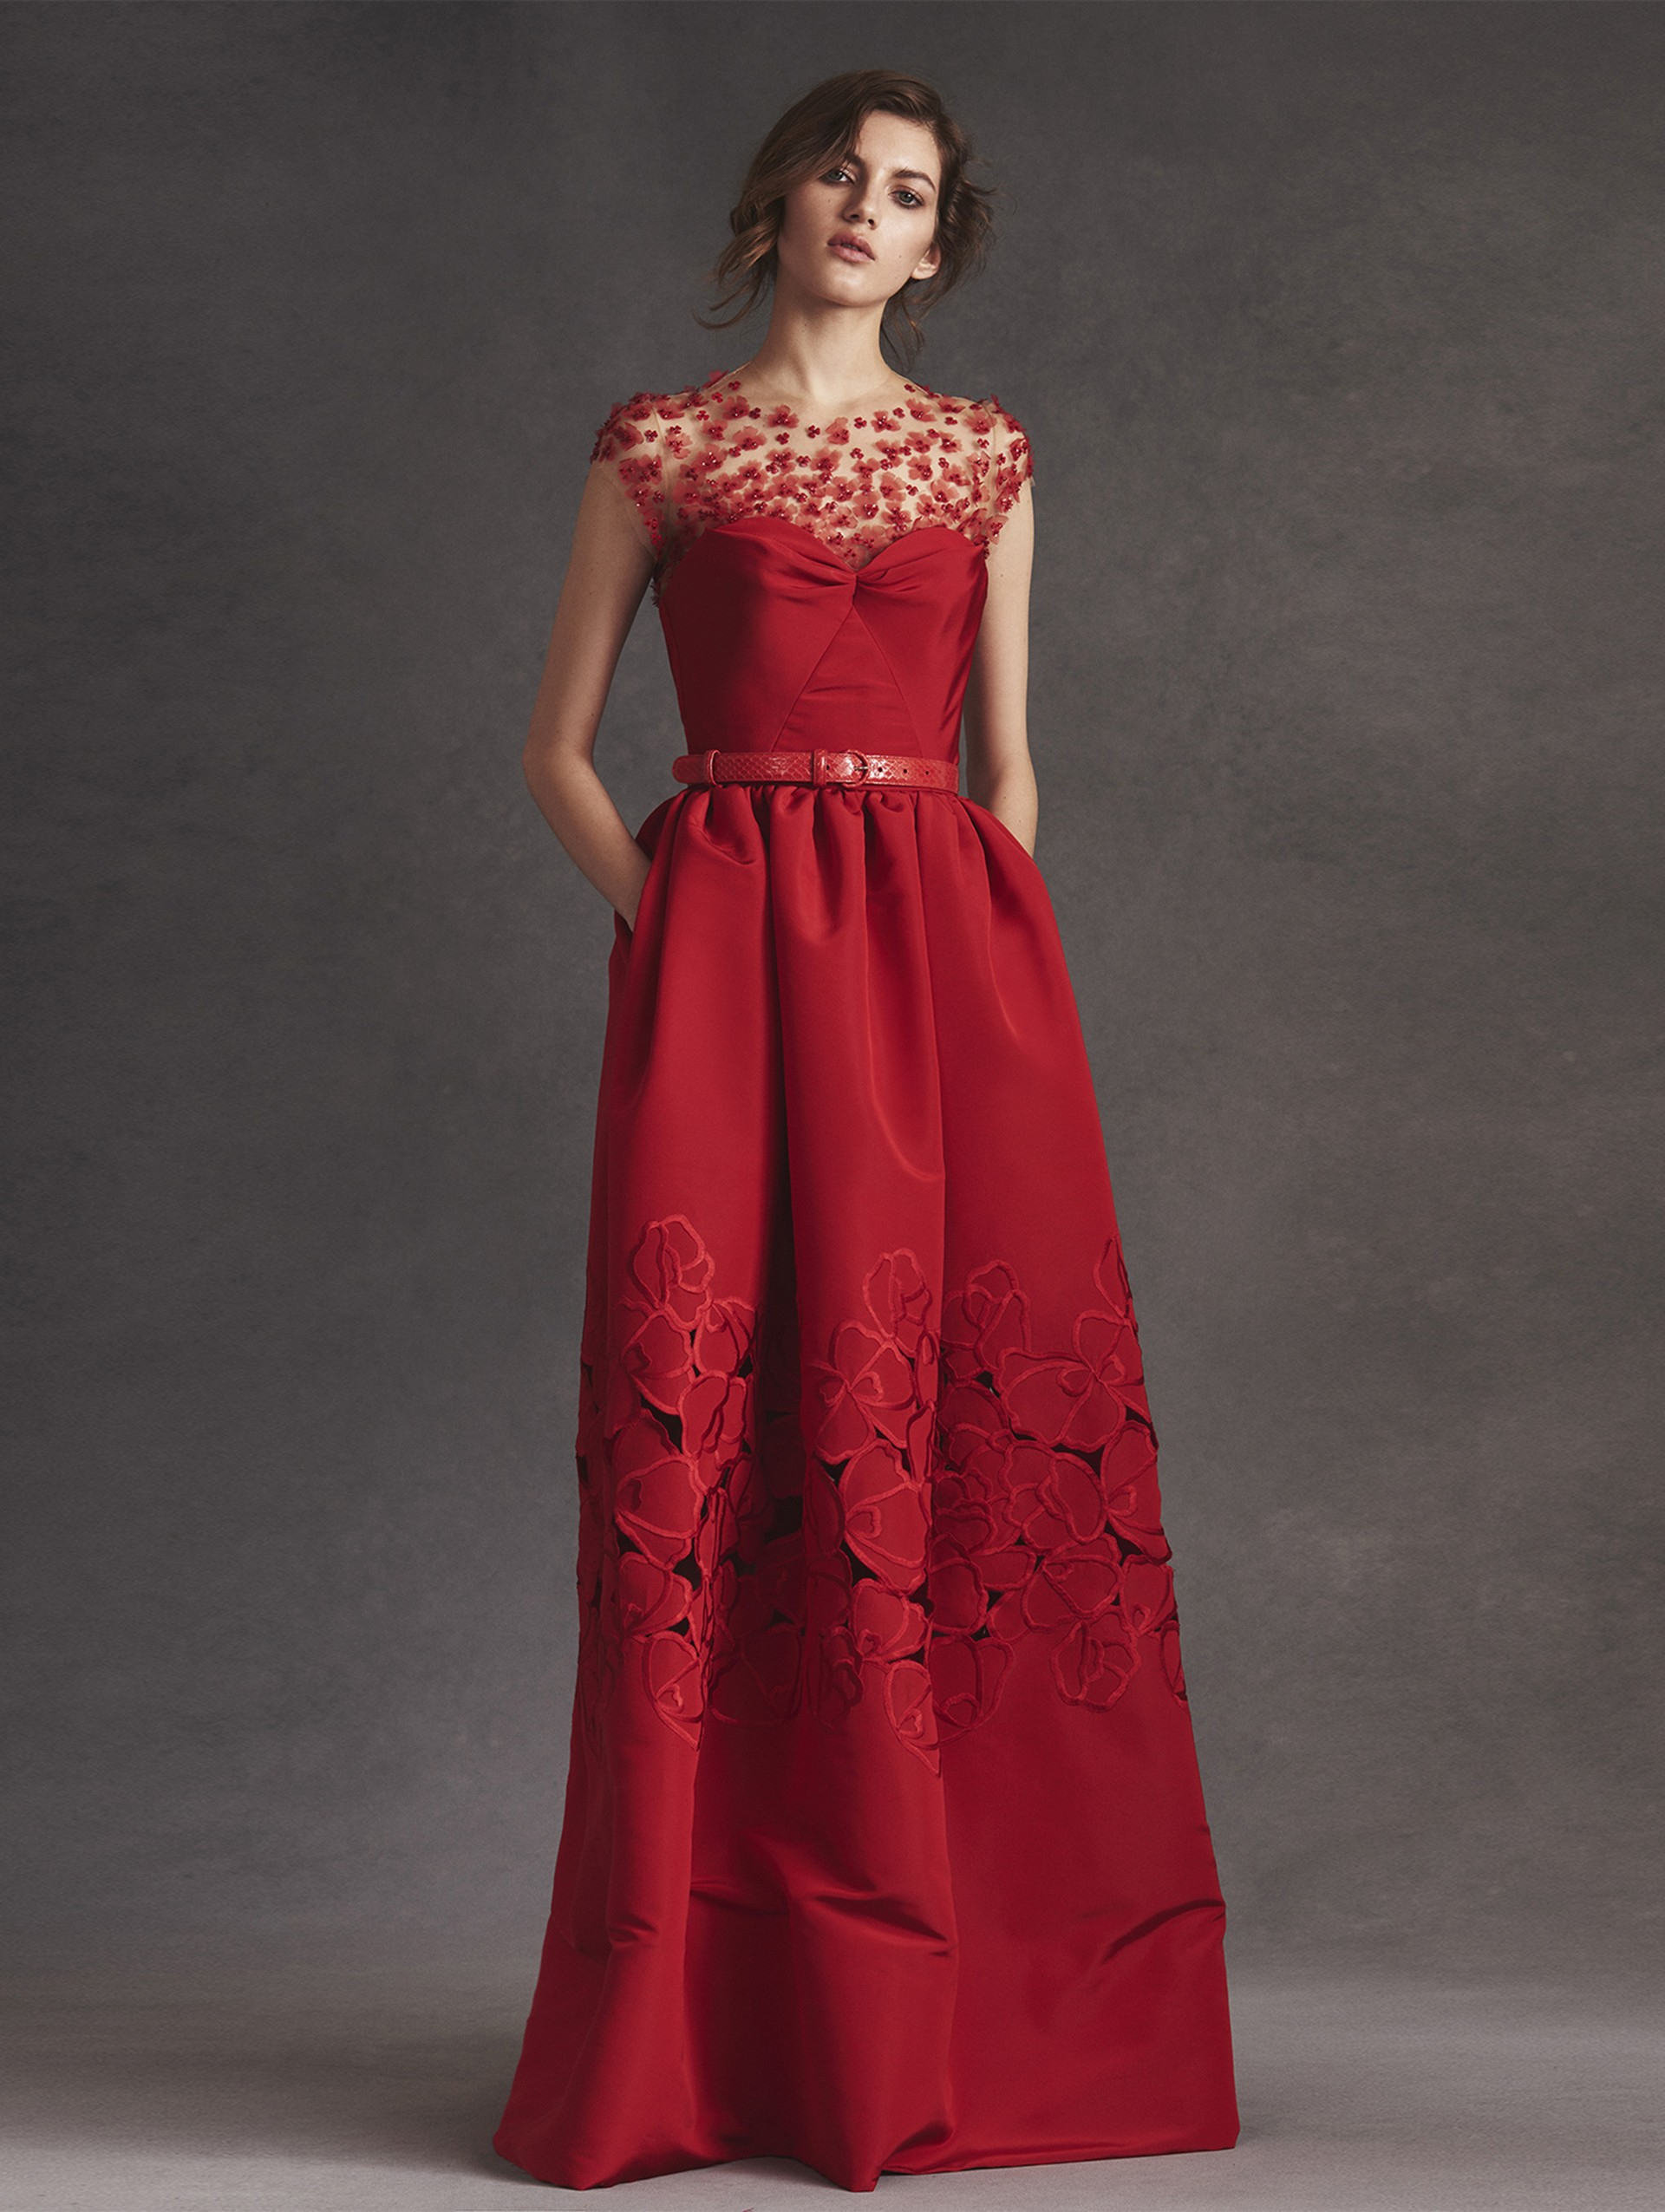 lyst oscar de la renta embroidered d colletage floral cutout silk faille gown in red. Black Bedroom Furniture Sets. Home Design Ideas